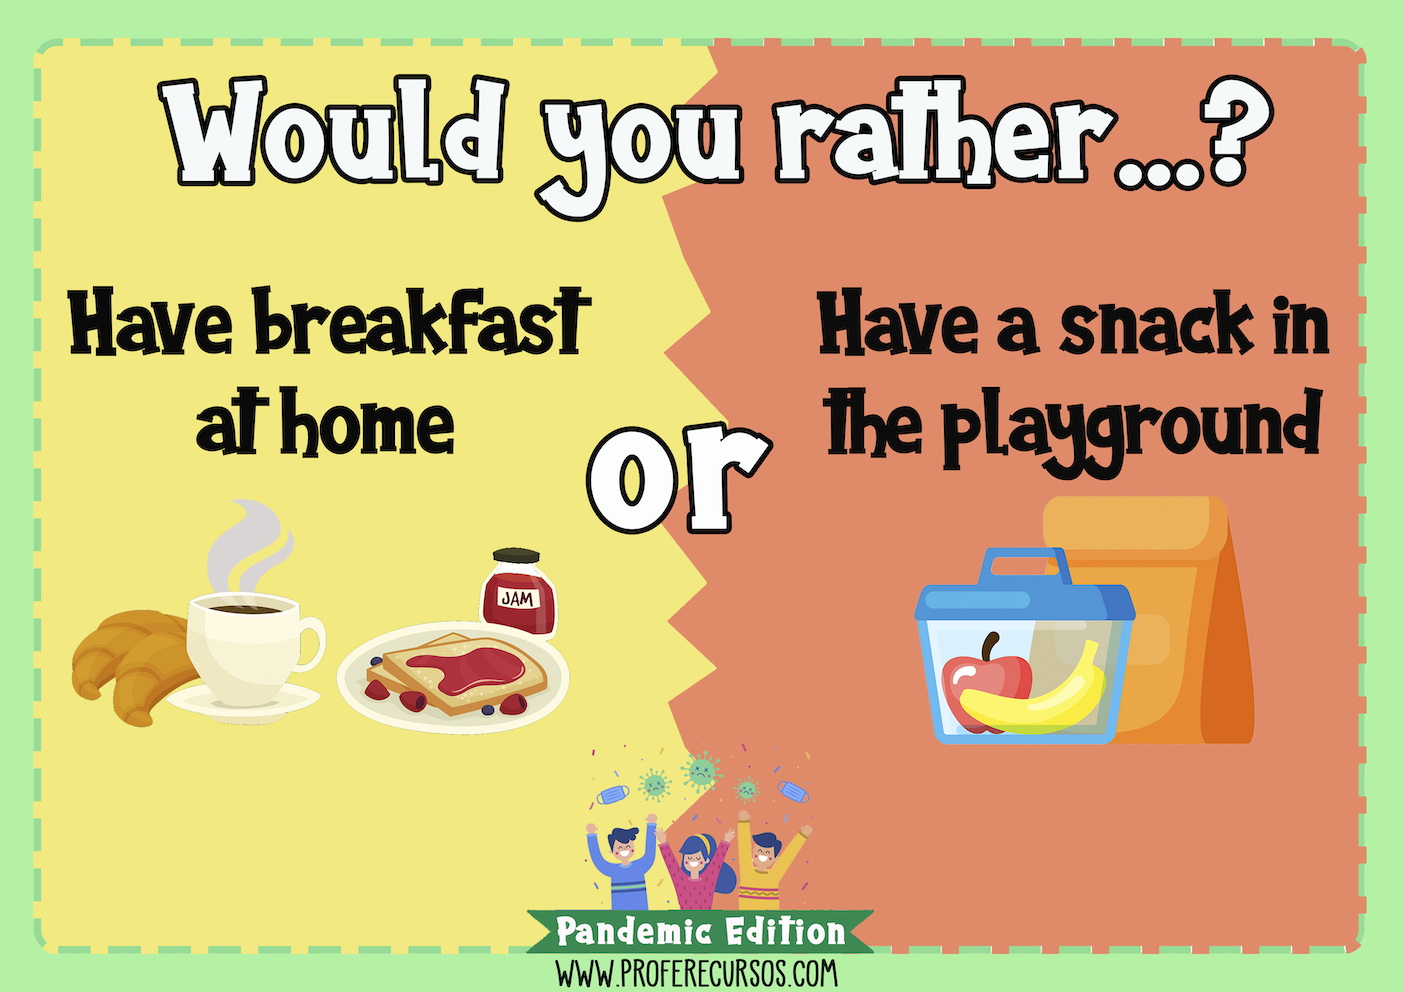 Would you rather game online